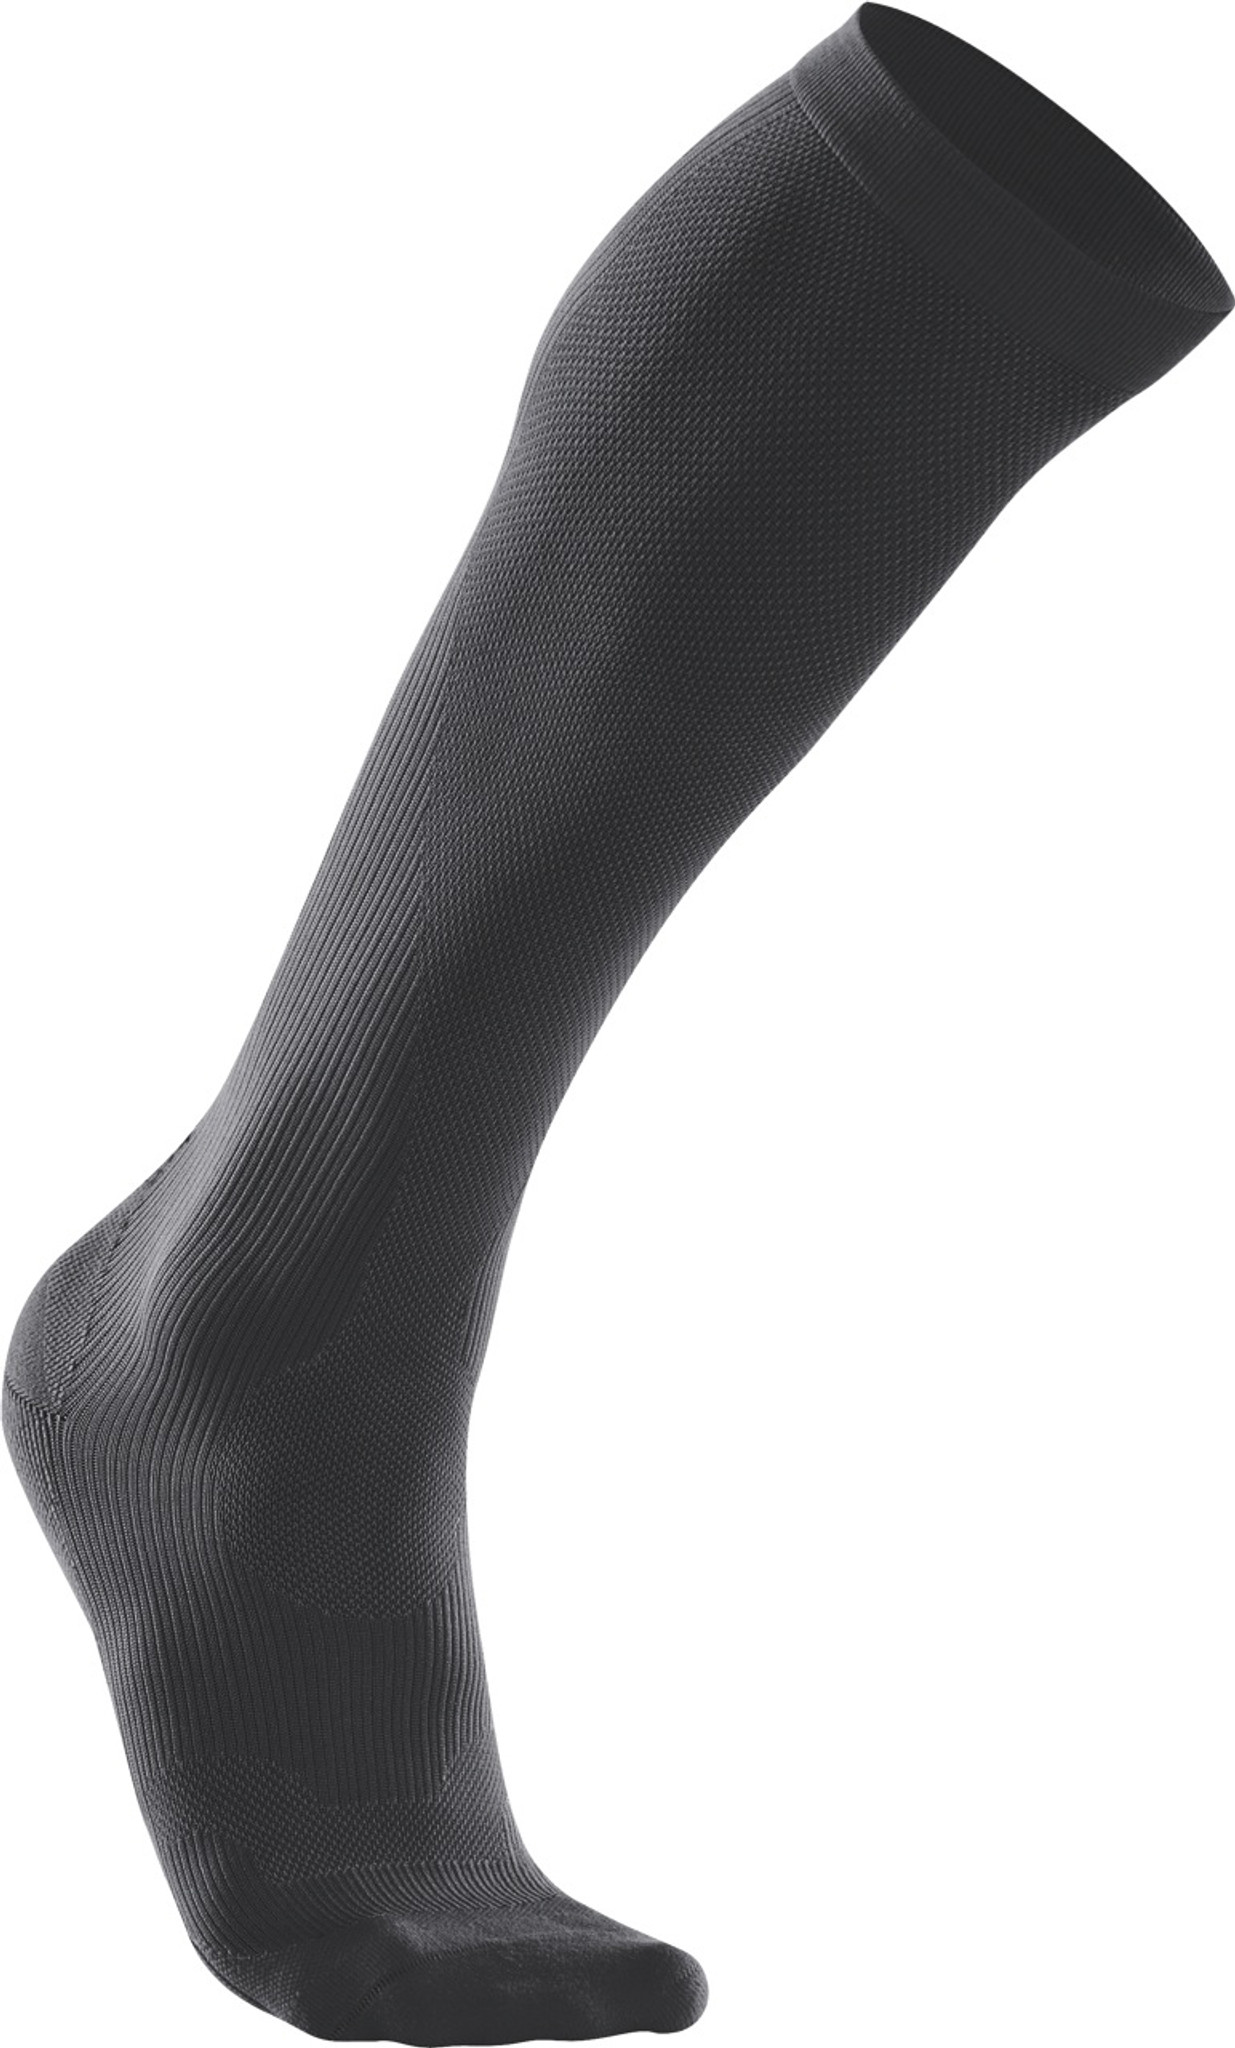 2xu Compression Mens Running Socks Clothing & Accessories Black Men's Clothing